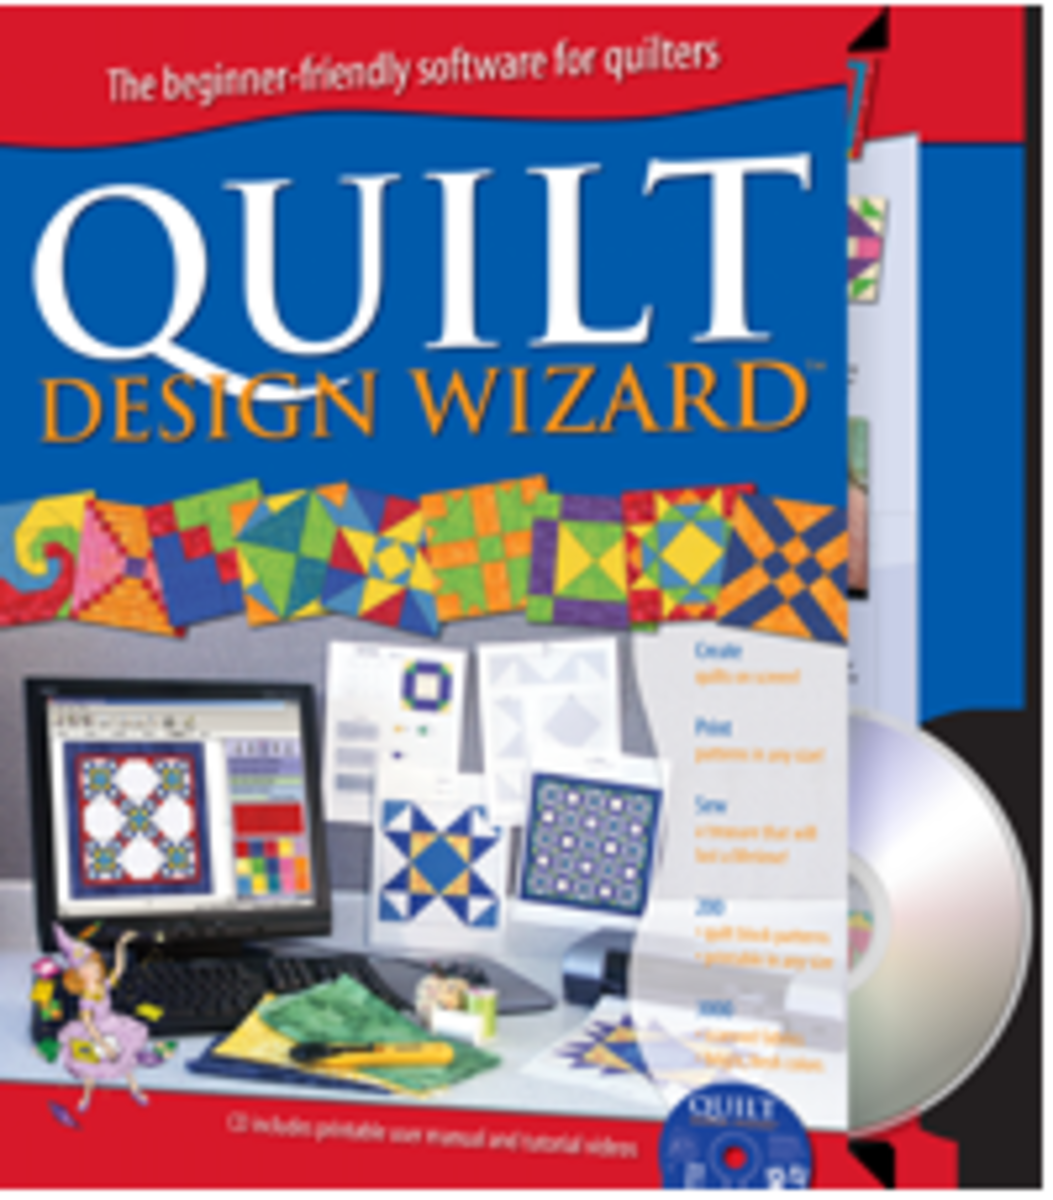 More great Electric Quilt software